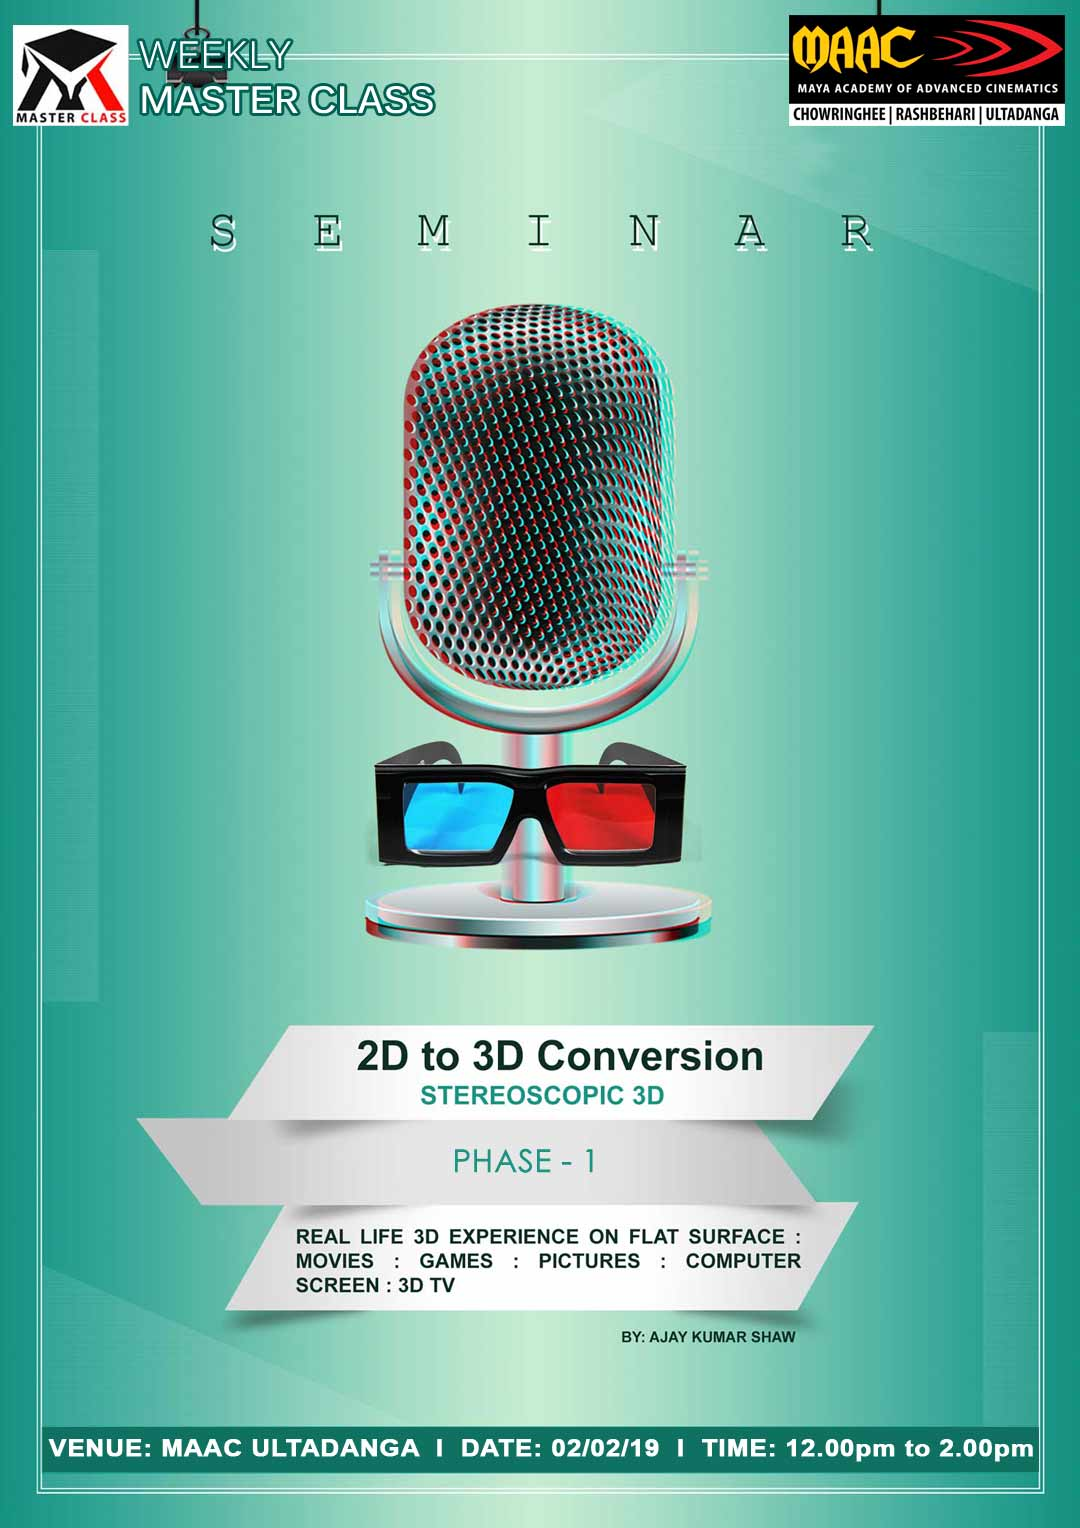 Weekly Master Class on 2D to 3D Conversion Phase 1